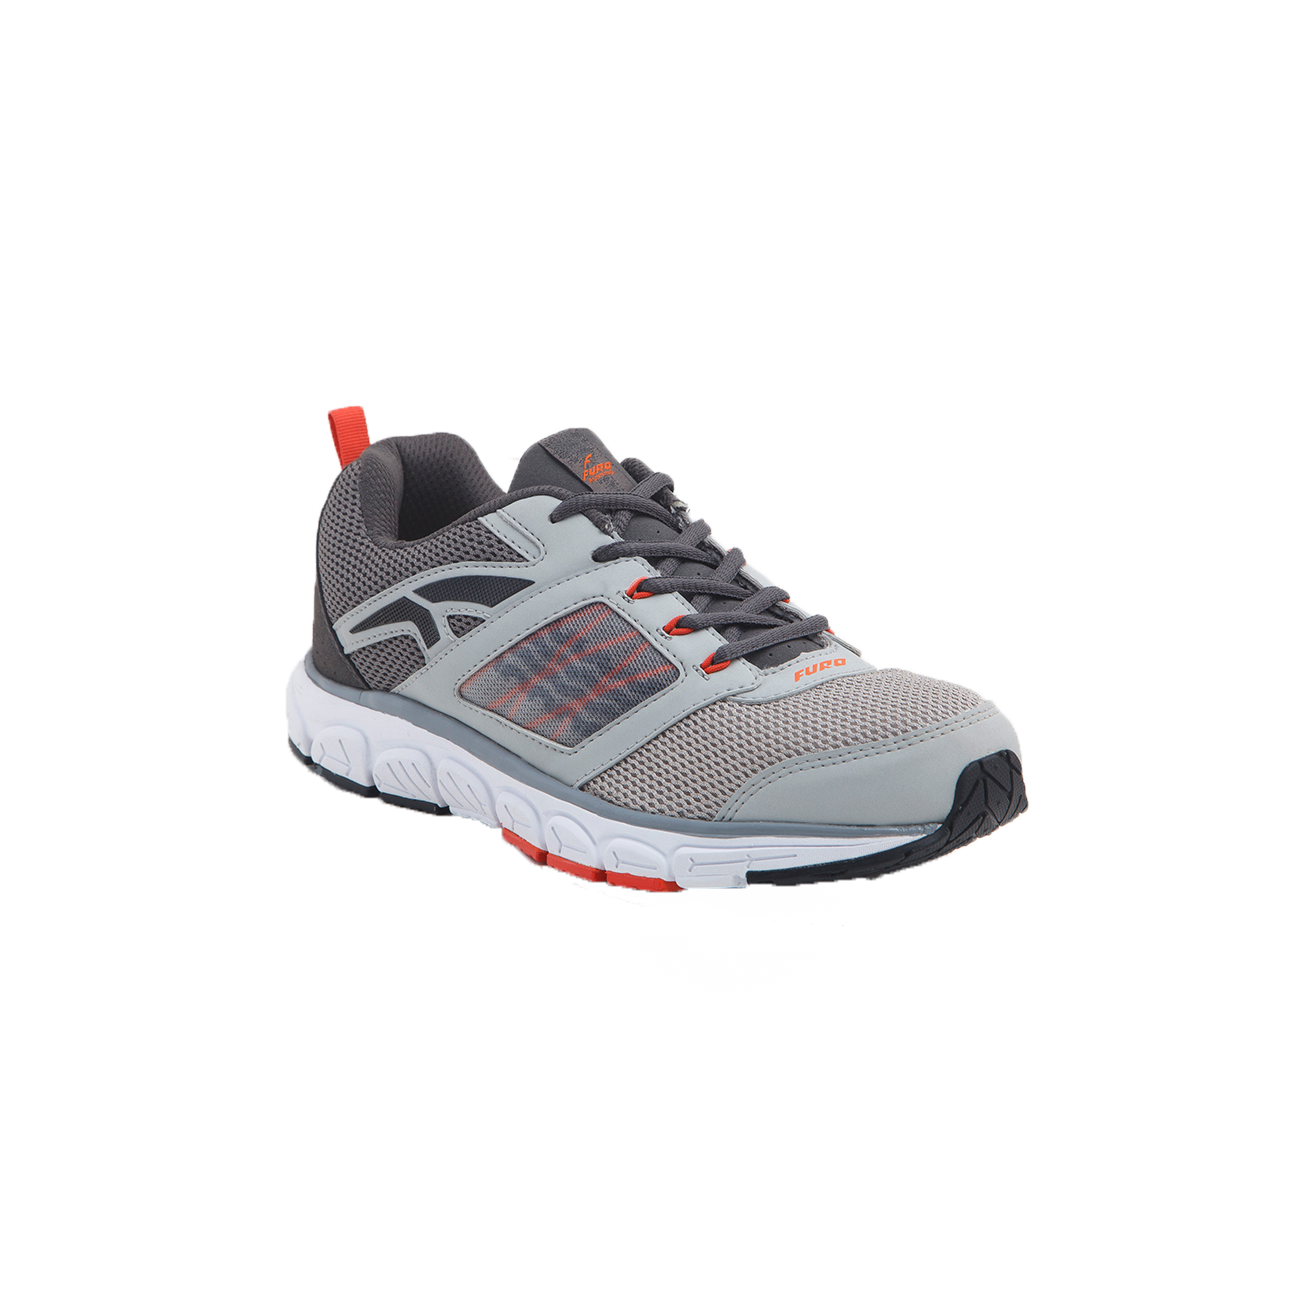 FURO R1000   Running Shoes for Men